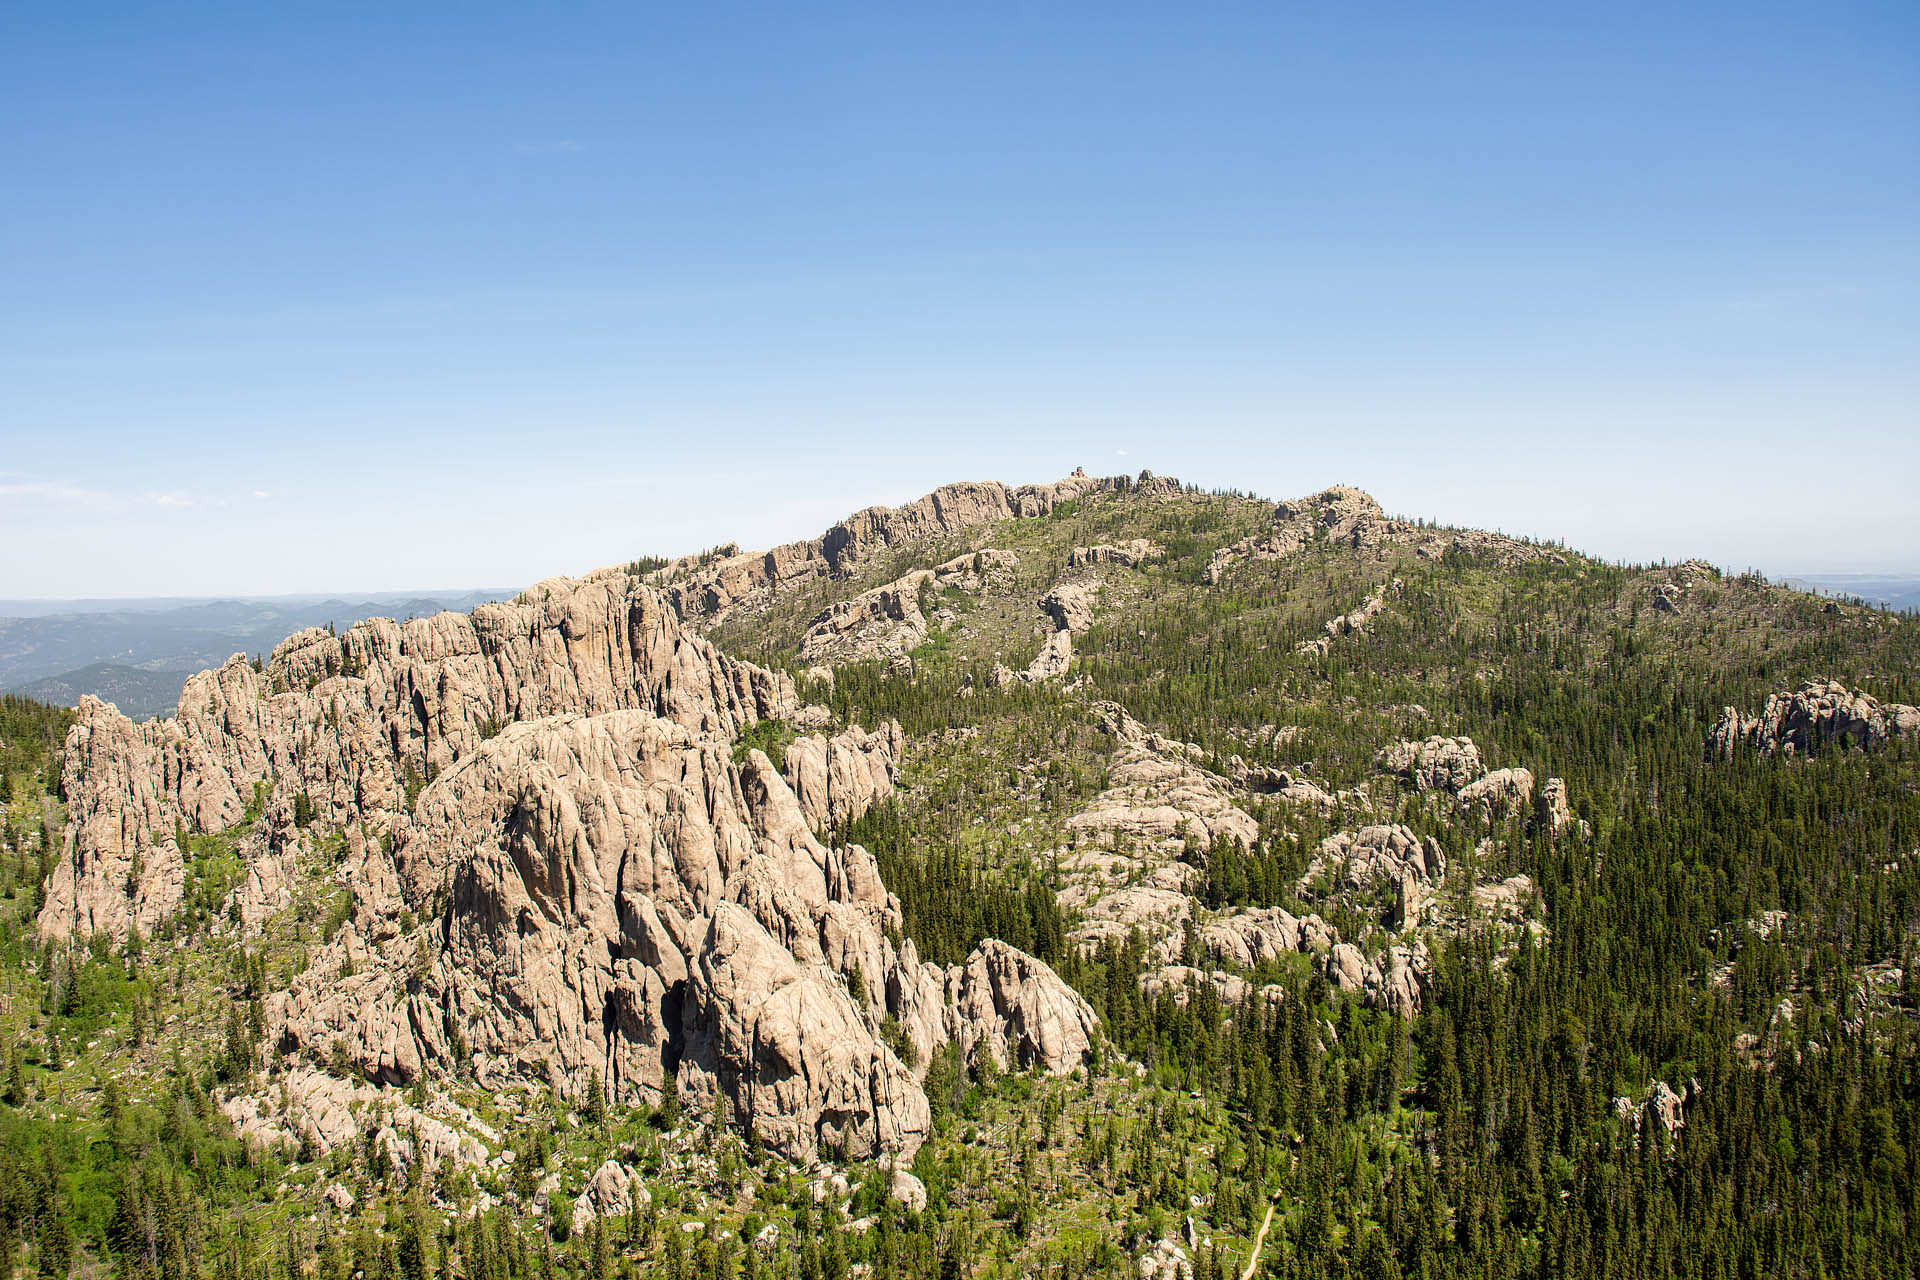 Looking north to Black Elk Peak